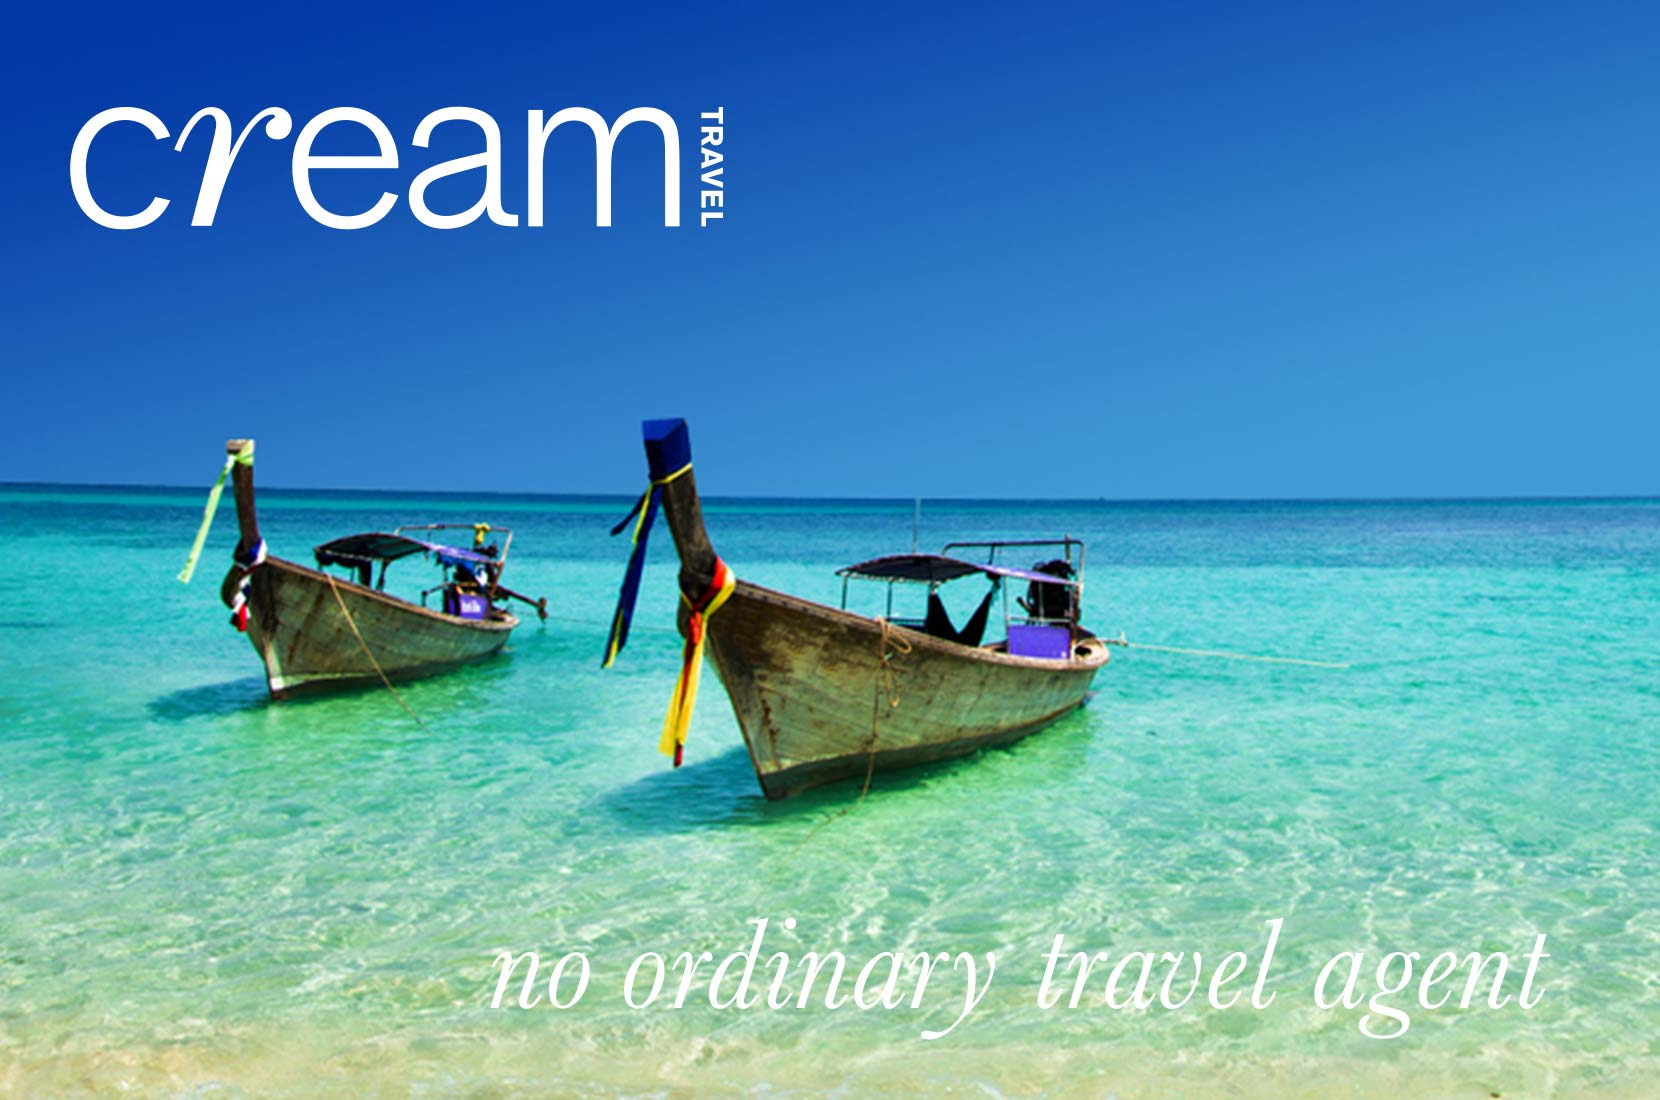 Cream Header Image, Boats docked at a beach in Thailand